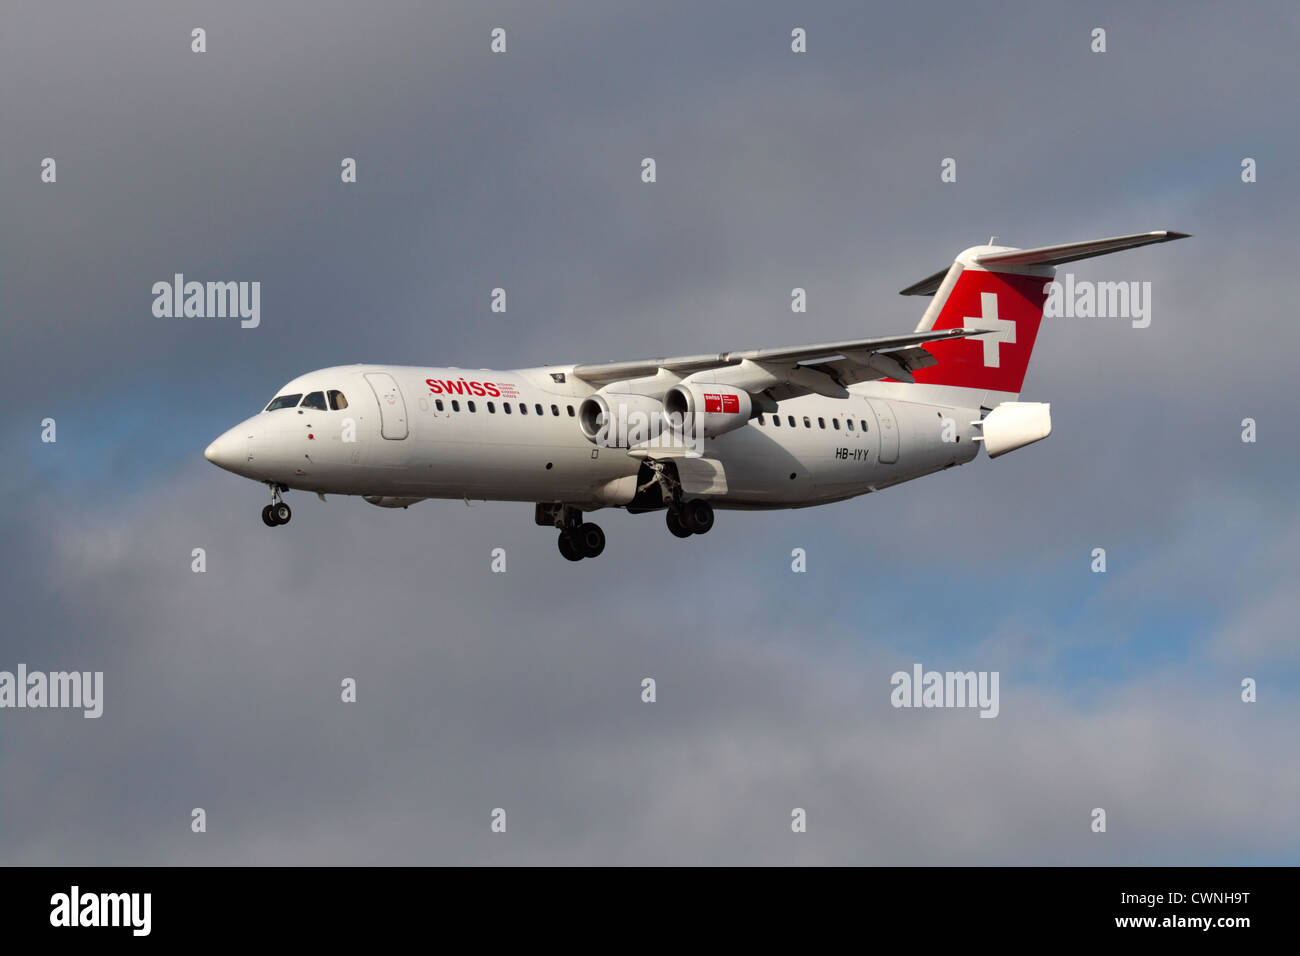 Swiss European Air Lines Avro RJ100 regional jet or small airliner flying on approach with tail airbrakes open. Stock Photo